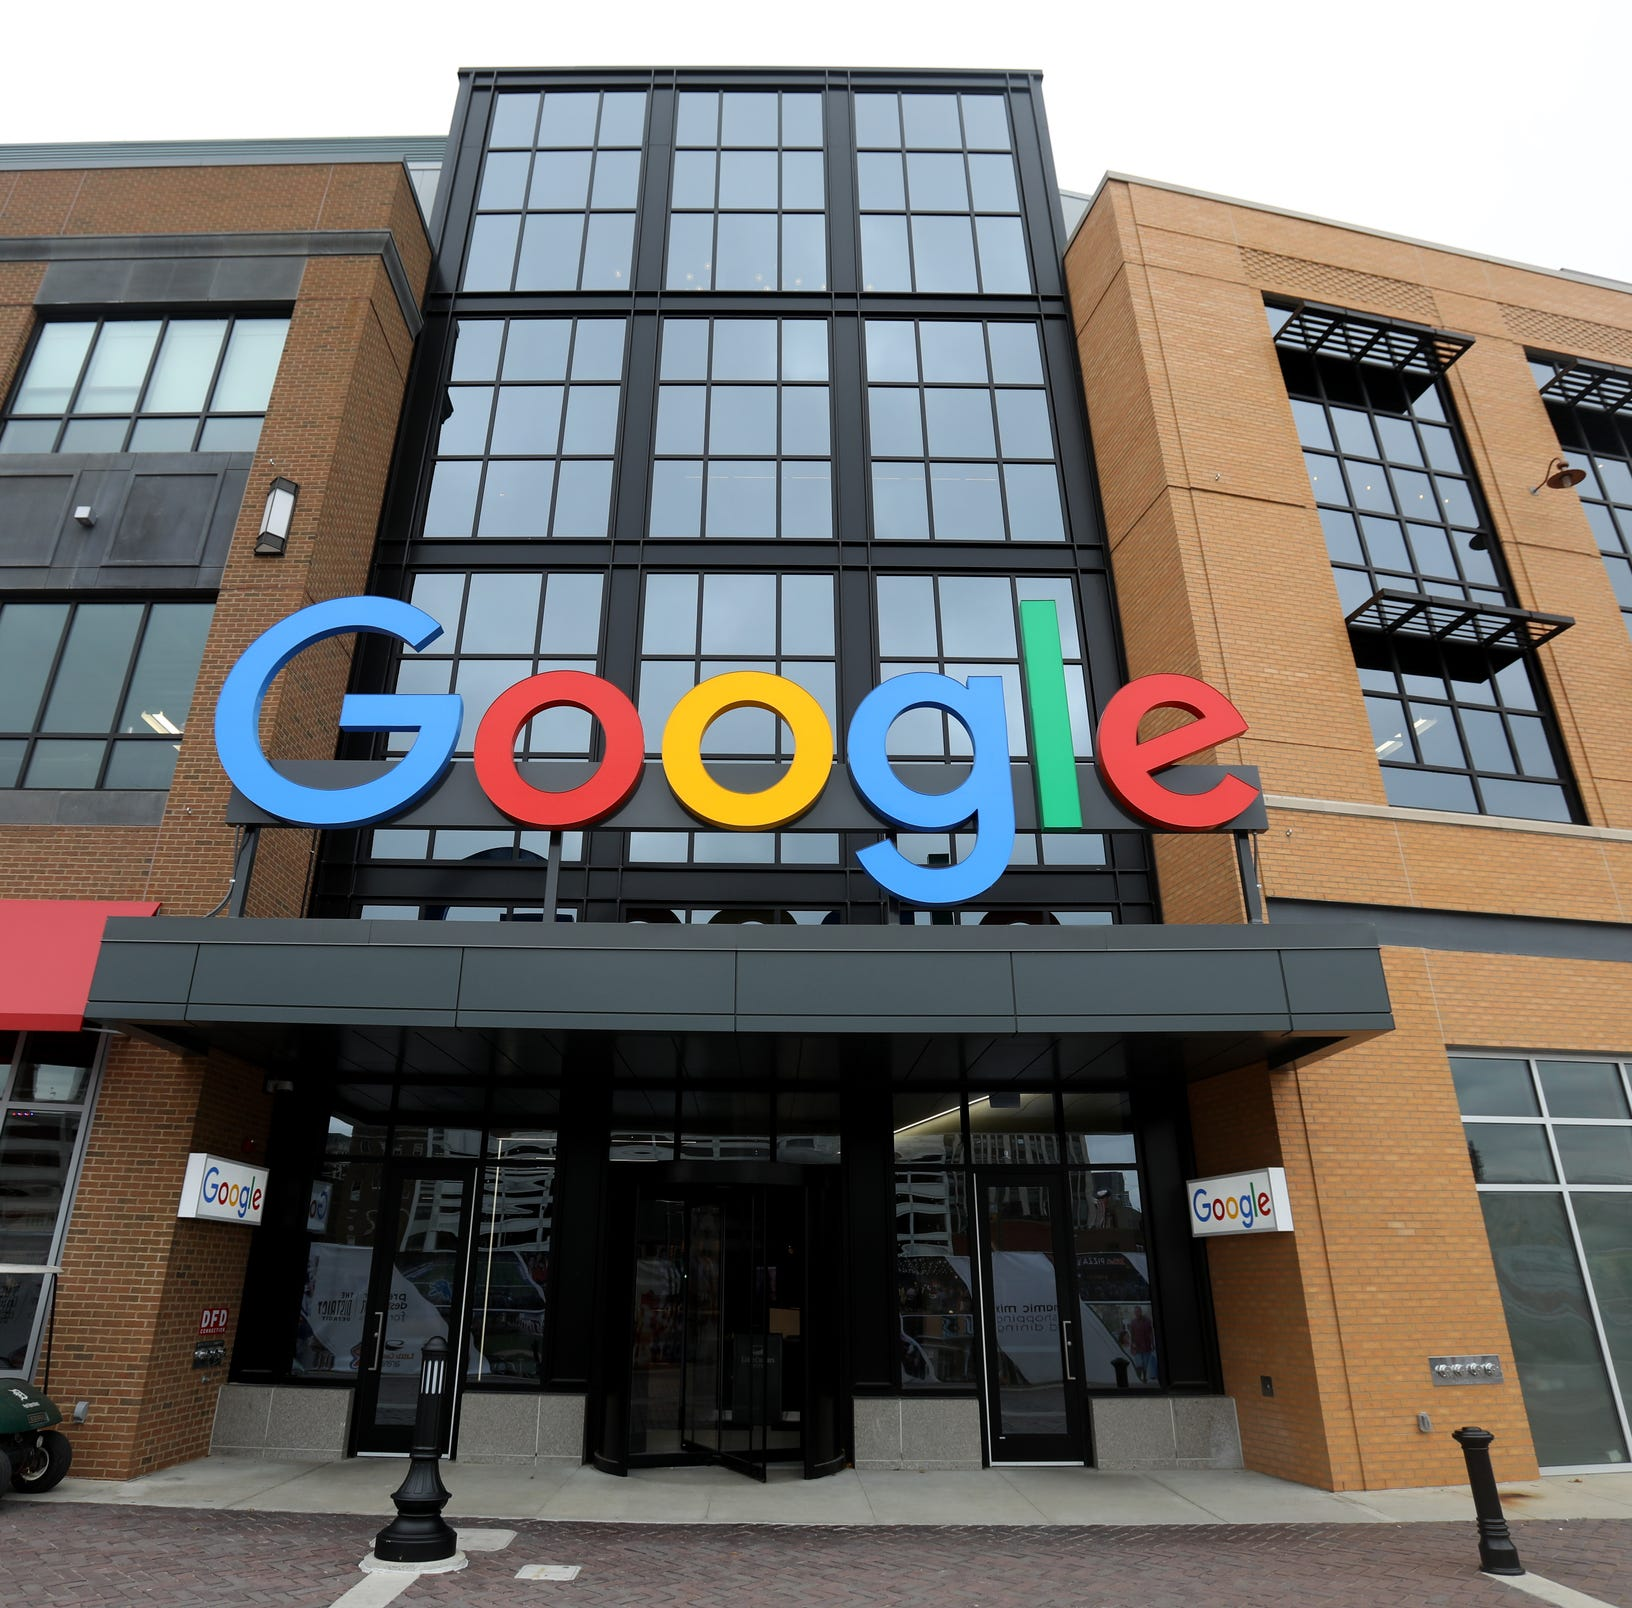 New Google partnership will help grow black businesses around world